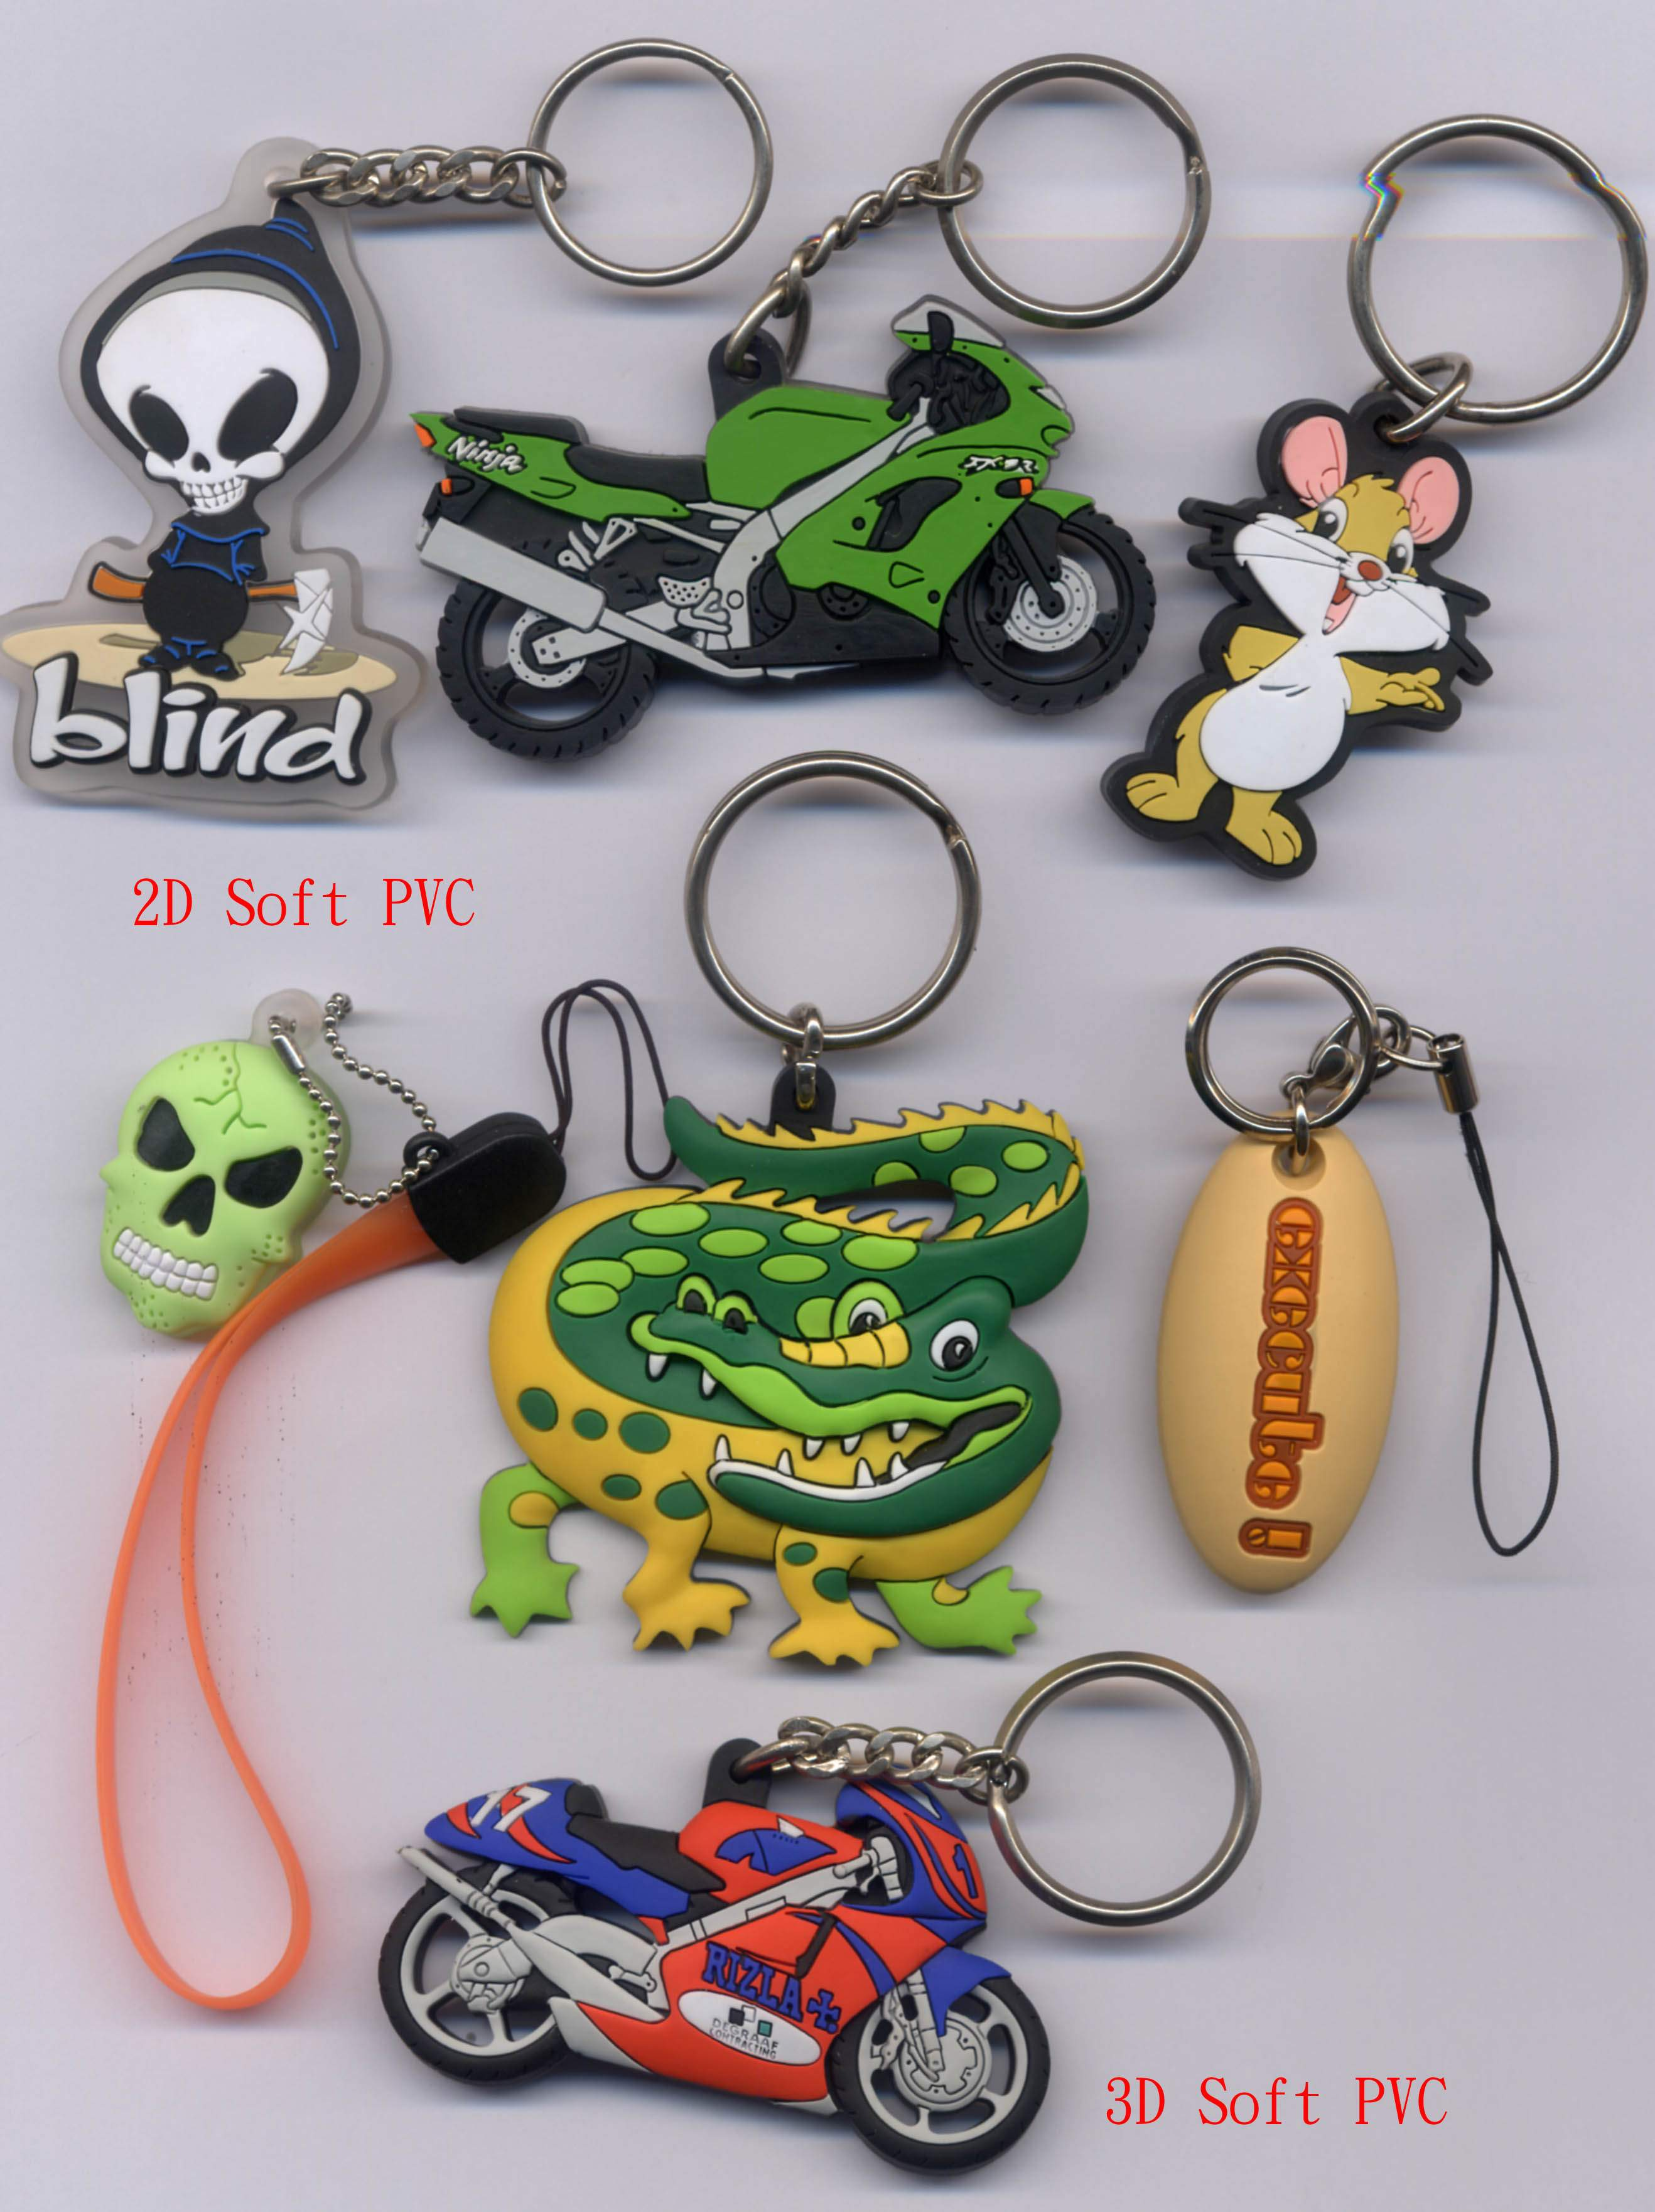 Soft PVC Products Keychain